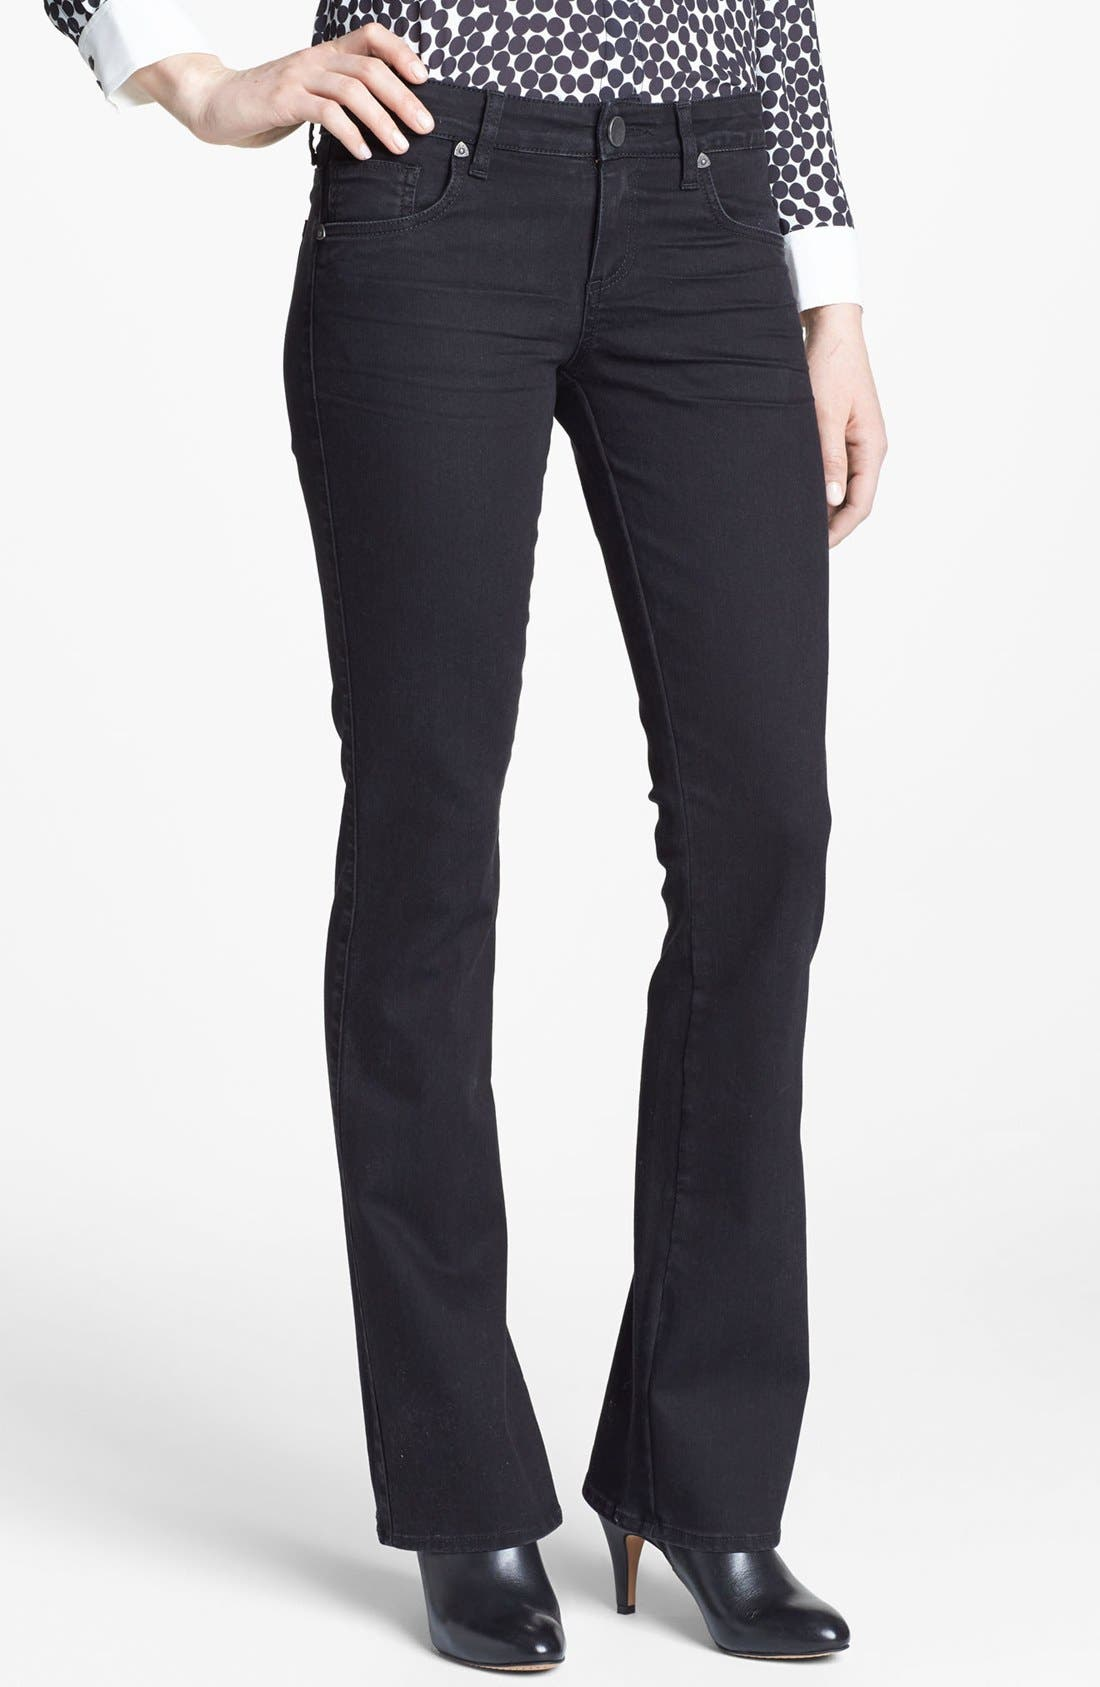 Alternate Image 1 Selected - KUT from the Kloth Farrah' Mini Bootcut Jeans (Black)